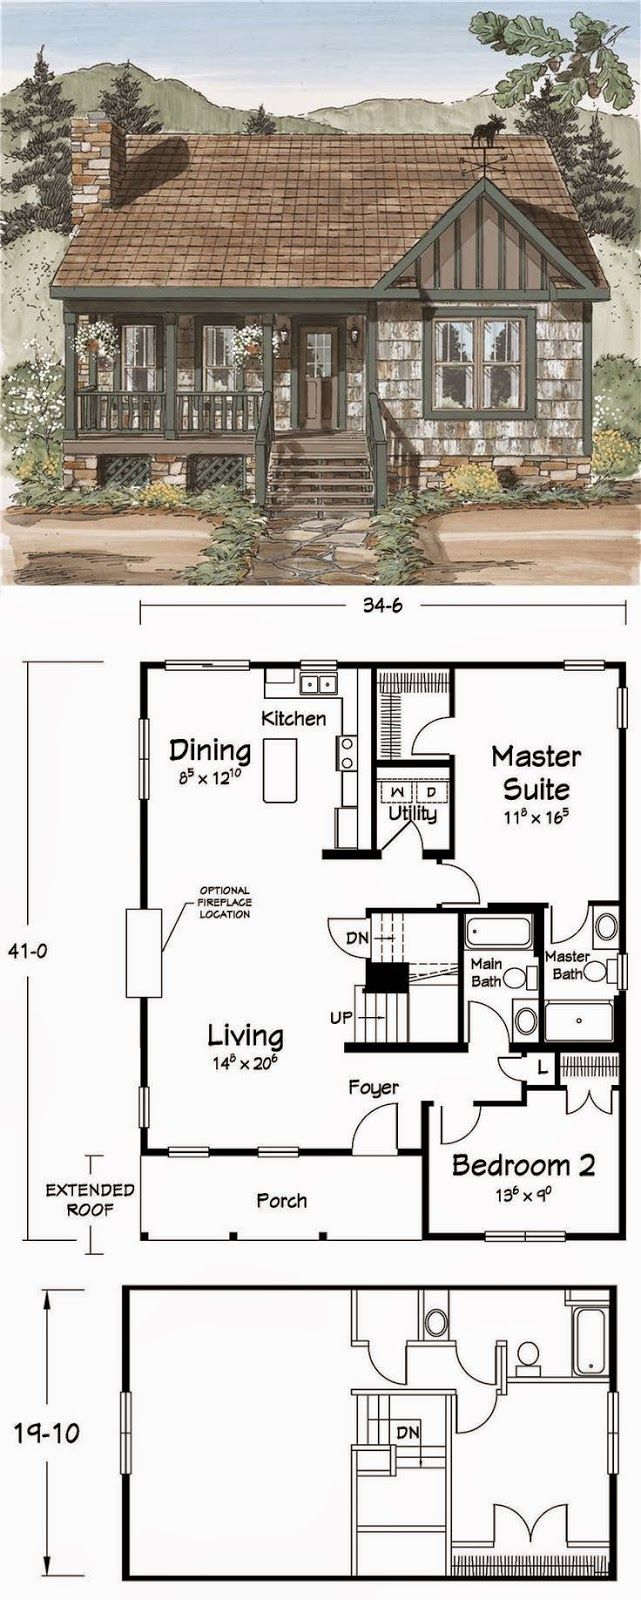 Architecture House Floor Plans 194 best architecture images on pinterest | architecture, house